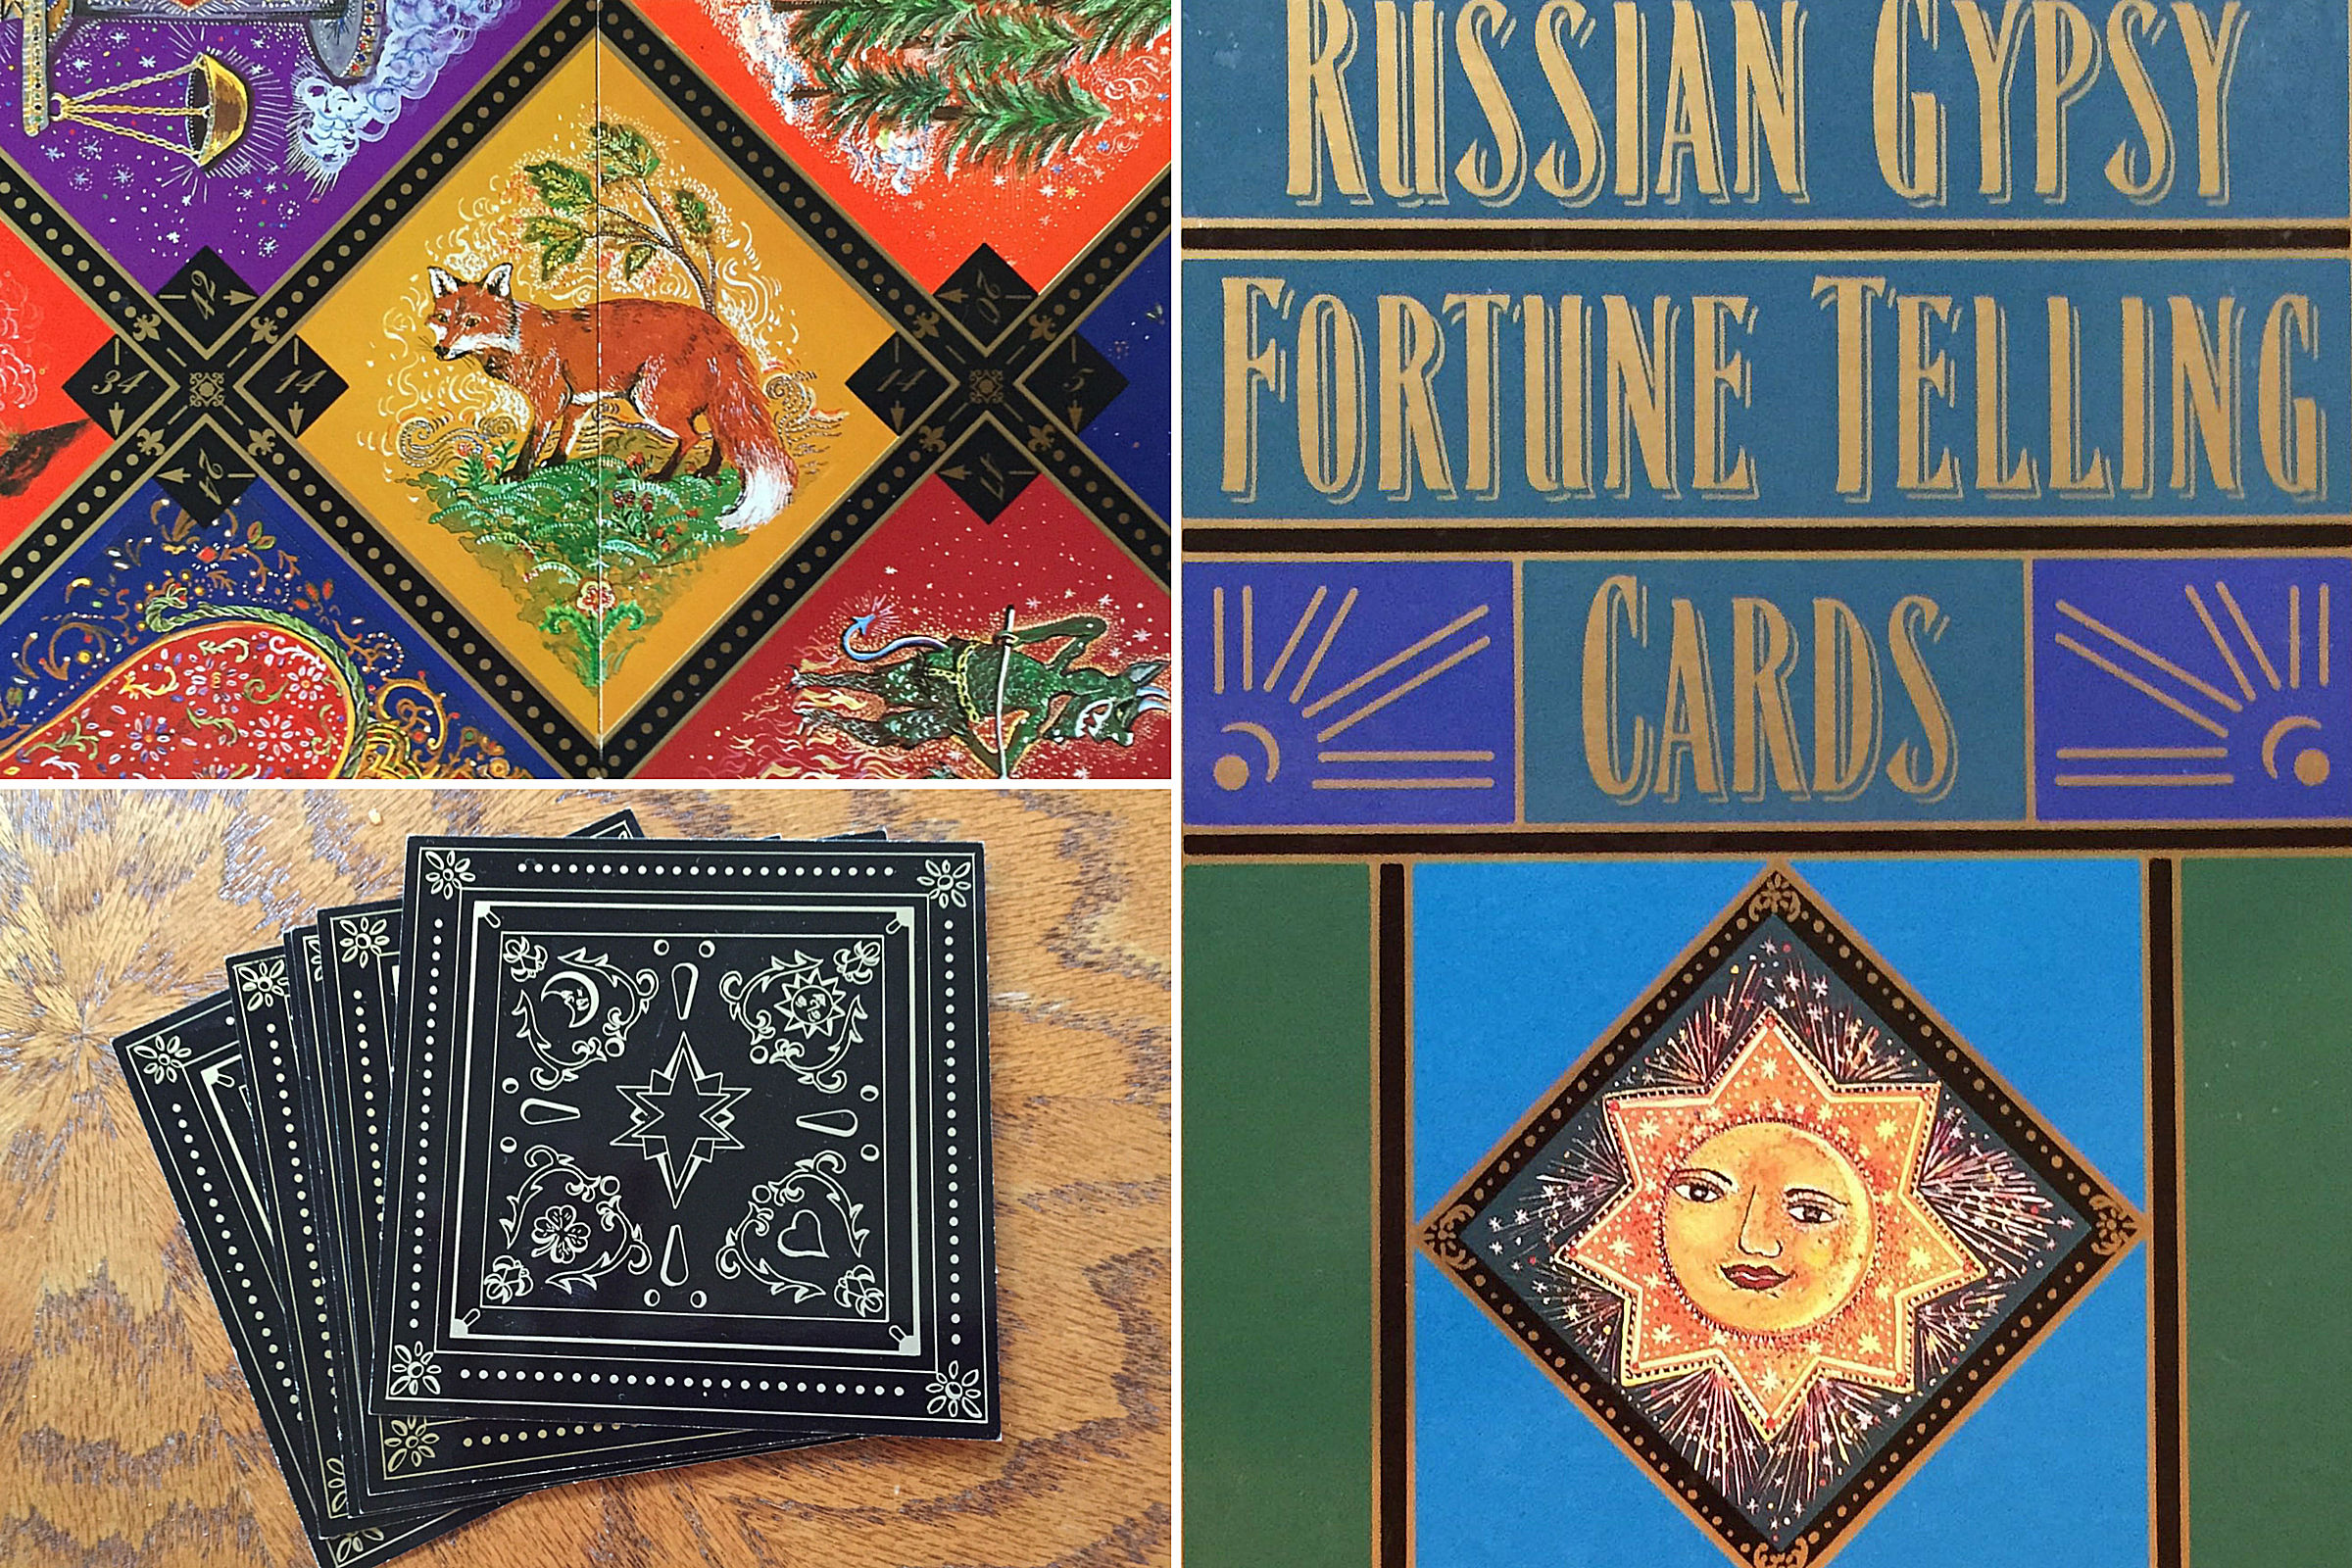 Russian Gypsy Fortune Telling Cards Layout and Reading